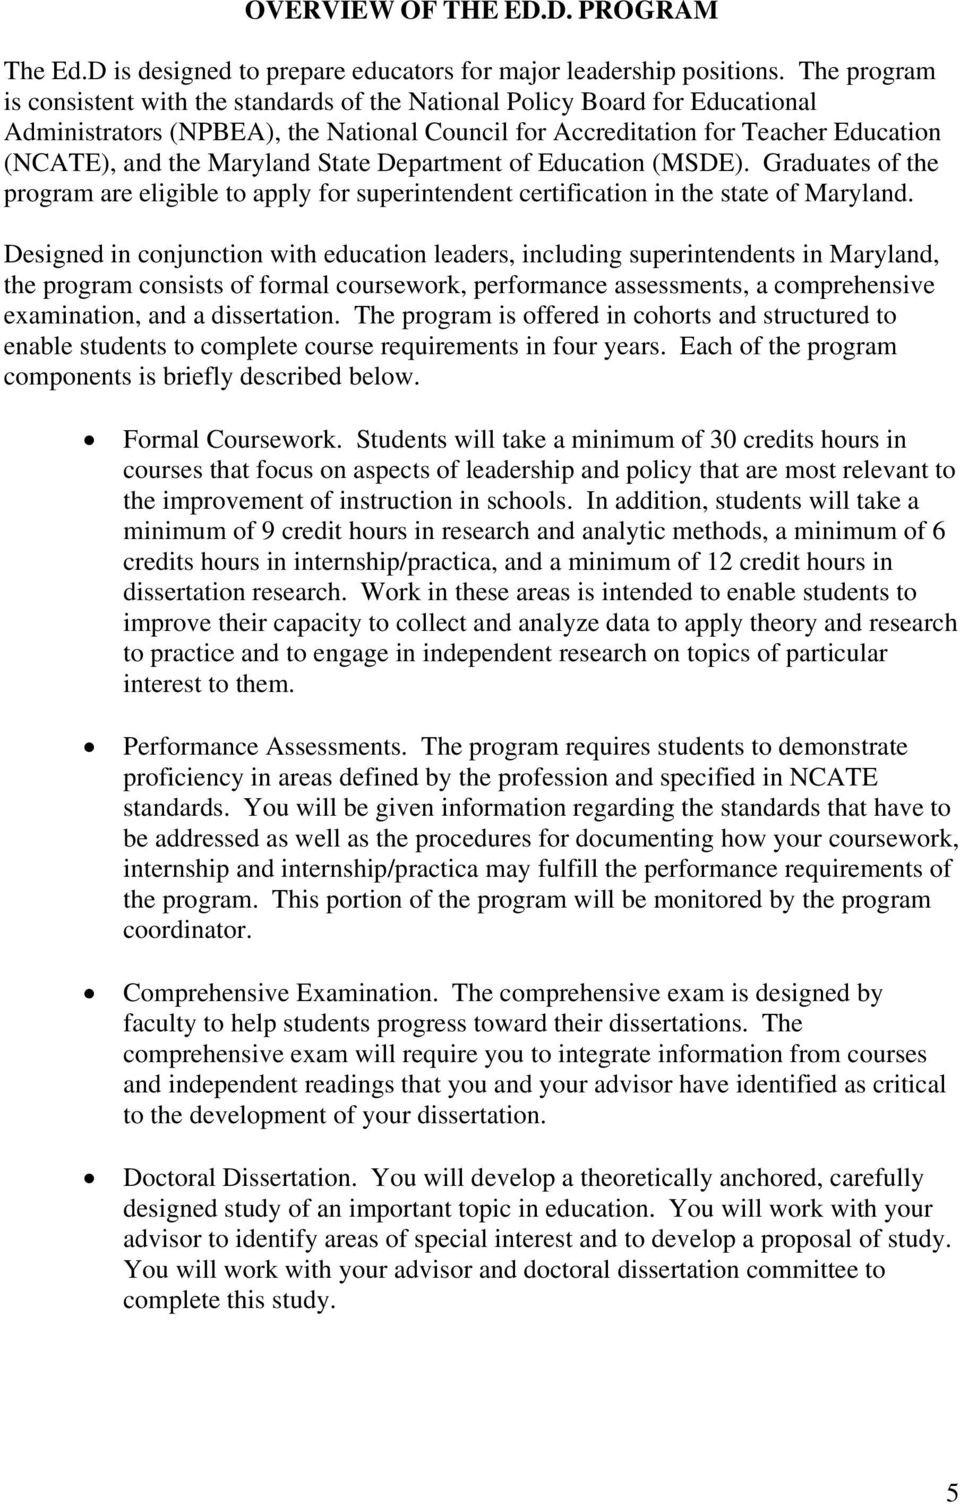 Maryland State Department of Education (MSDE). Graduates of the program are eligible to apply for superintendent certification in the state of Maryland.